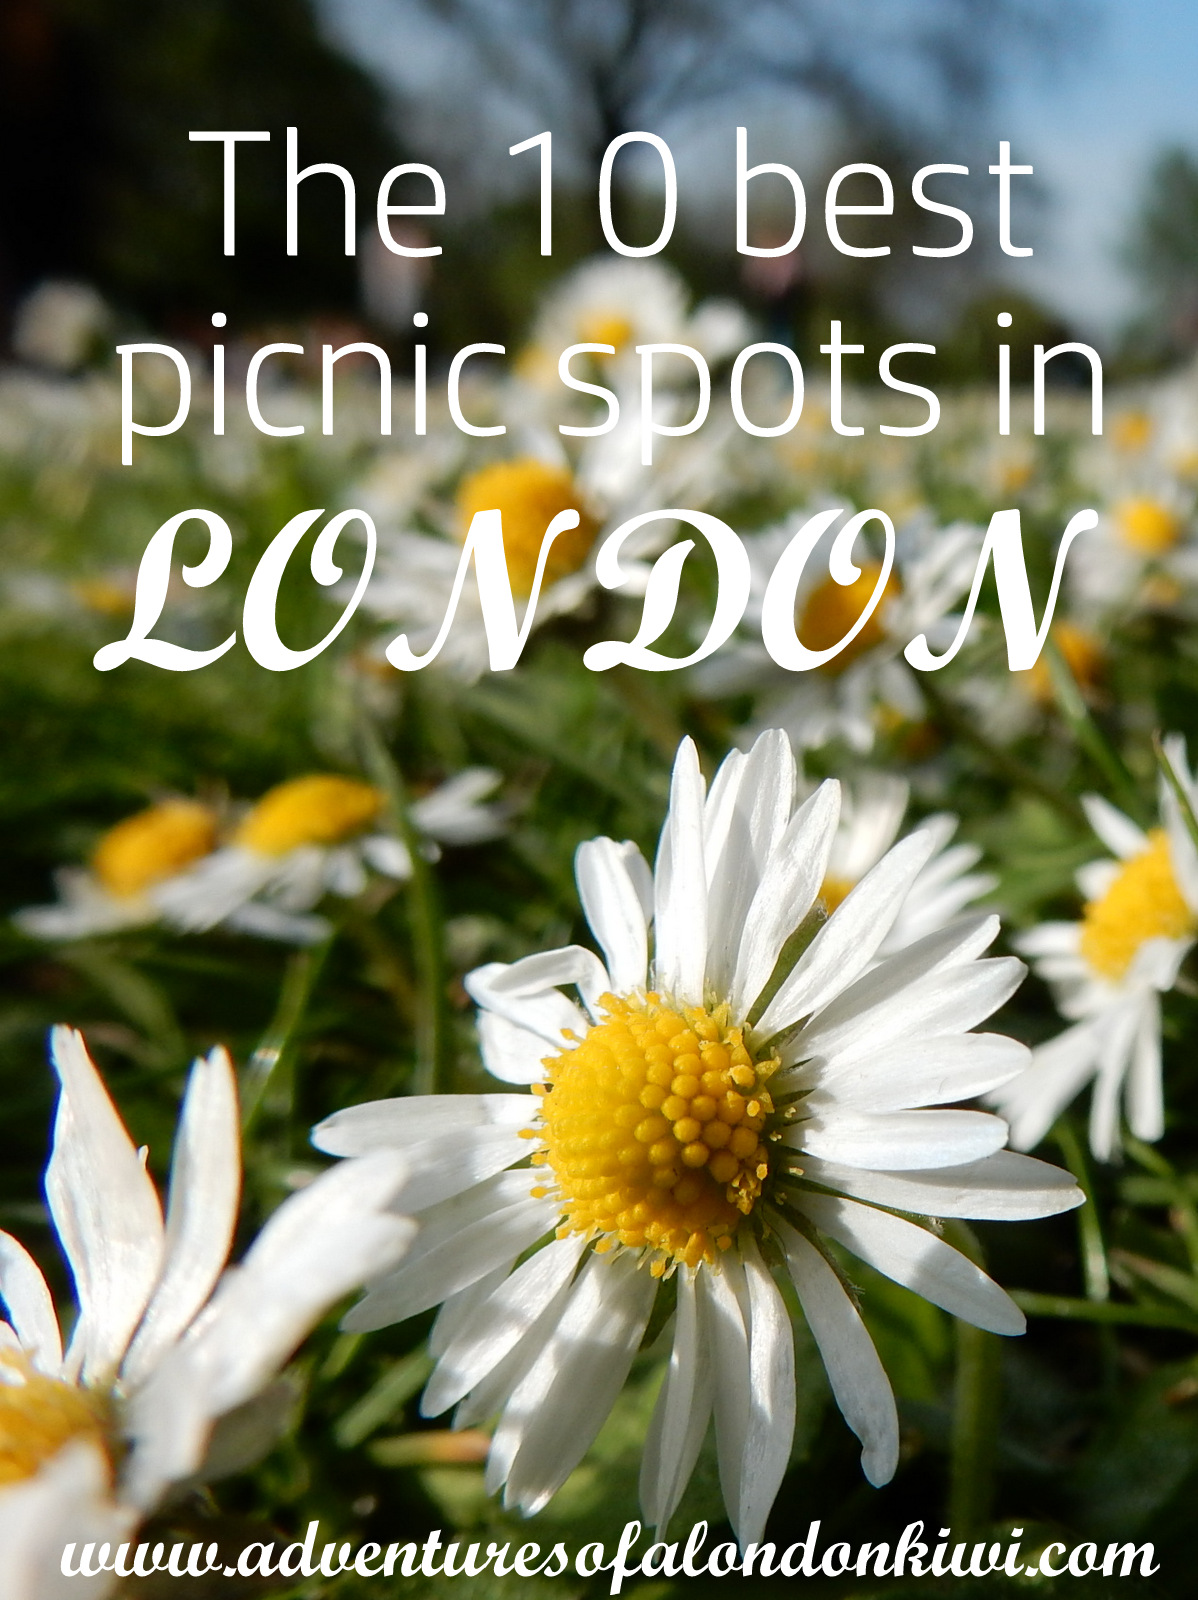 The 10 best picnic spots in London Adventures of a London Kiwi